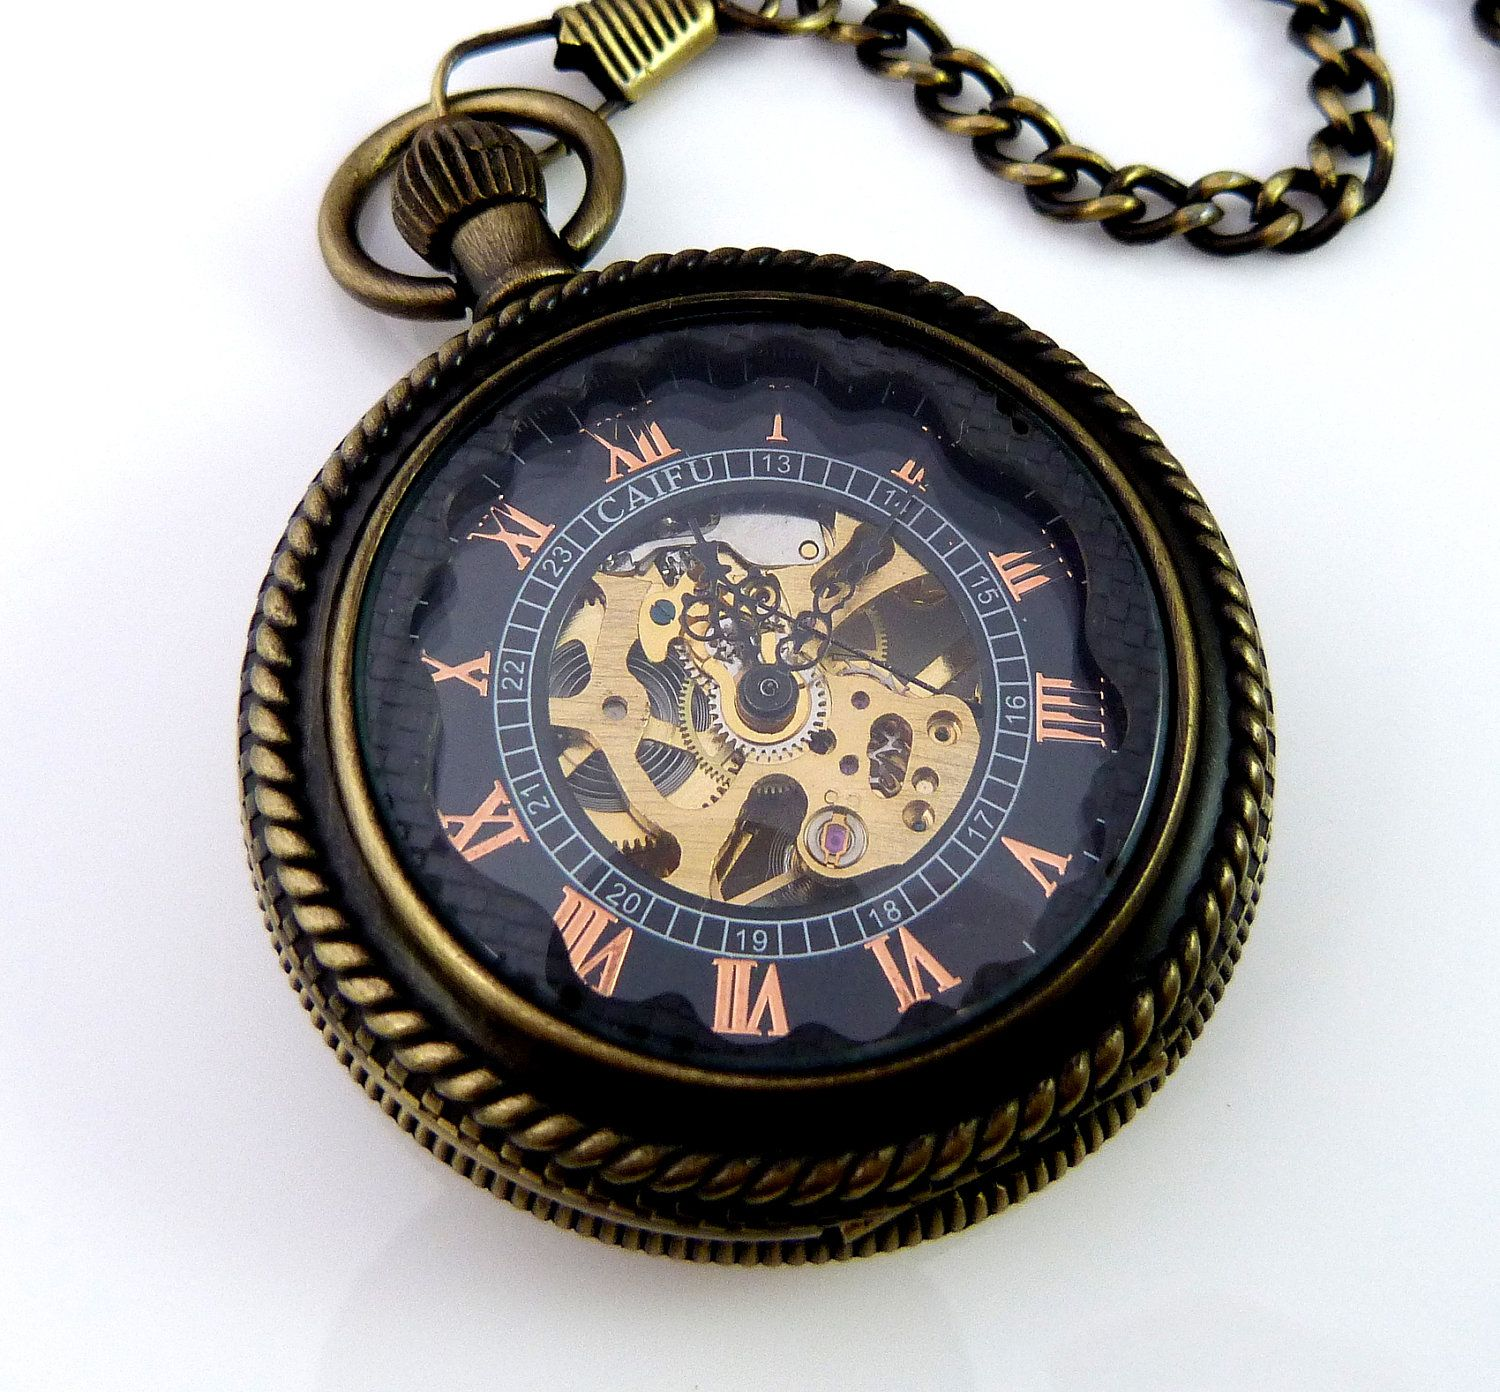 Steampunk pocket watch  Steampunk pocket watch, key and necklace | Steampunk | Pinterest ...